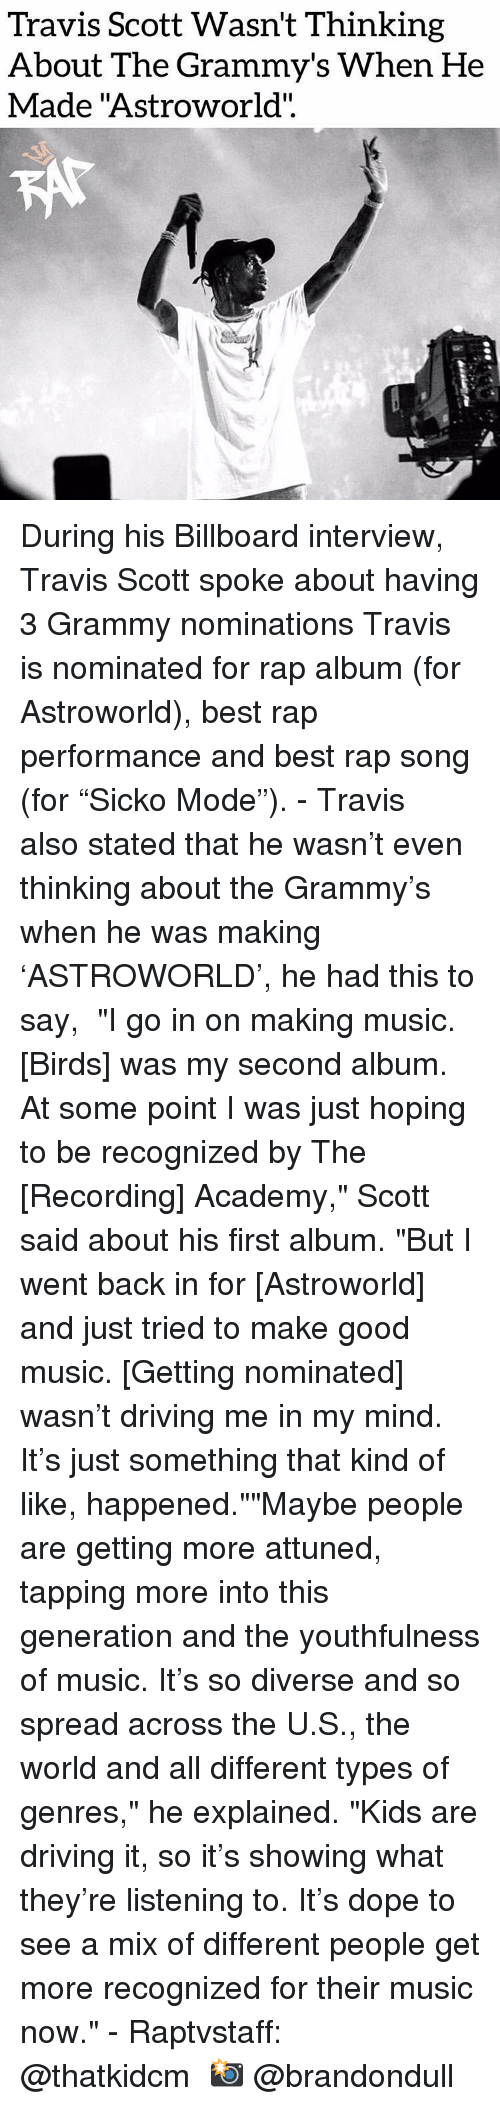 "Grammys: Travis Scott Wasn't Thinking  About The Grammy's When He  Made ""Astroworld"".  CO During his Billboard interview, Travis Scott spoke about having 3 Grammy nominations Travis is nominated for rap album (for Astroworld), best rap performance and best rap song (for ""Sicko Mode"").⁣ -⁣ Travis also stated that he wasn't even thinking about the Grammy's when he was making 'ASTROWORLD', he had this to say,⁣ ⁣ ""I go in on making music. [Birds] was my second album. At some point I was just hoping to be recognized by The [Recording] Academy,"" Scott said about his first album. ""But I went back in for [Astroworld] and just tried to make good music. [Getting nominated] wasn't driving me in my mind. It's just something that kind of like, happened.""""Maybe people are getting more attuned, tapping more into this generation and the youthfulness of music. It's so diverse and so spread across the U.S., the world and all different types of genres,"" he explained. ""Kids are driving it, so it's showing what they're listening to. It's dope to see a mix of different people get more recognized for their music now.""⁣ -⁣ Raptvstaff: @thatkidcm⁣ 📸 @brandondull"